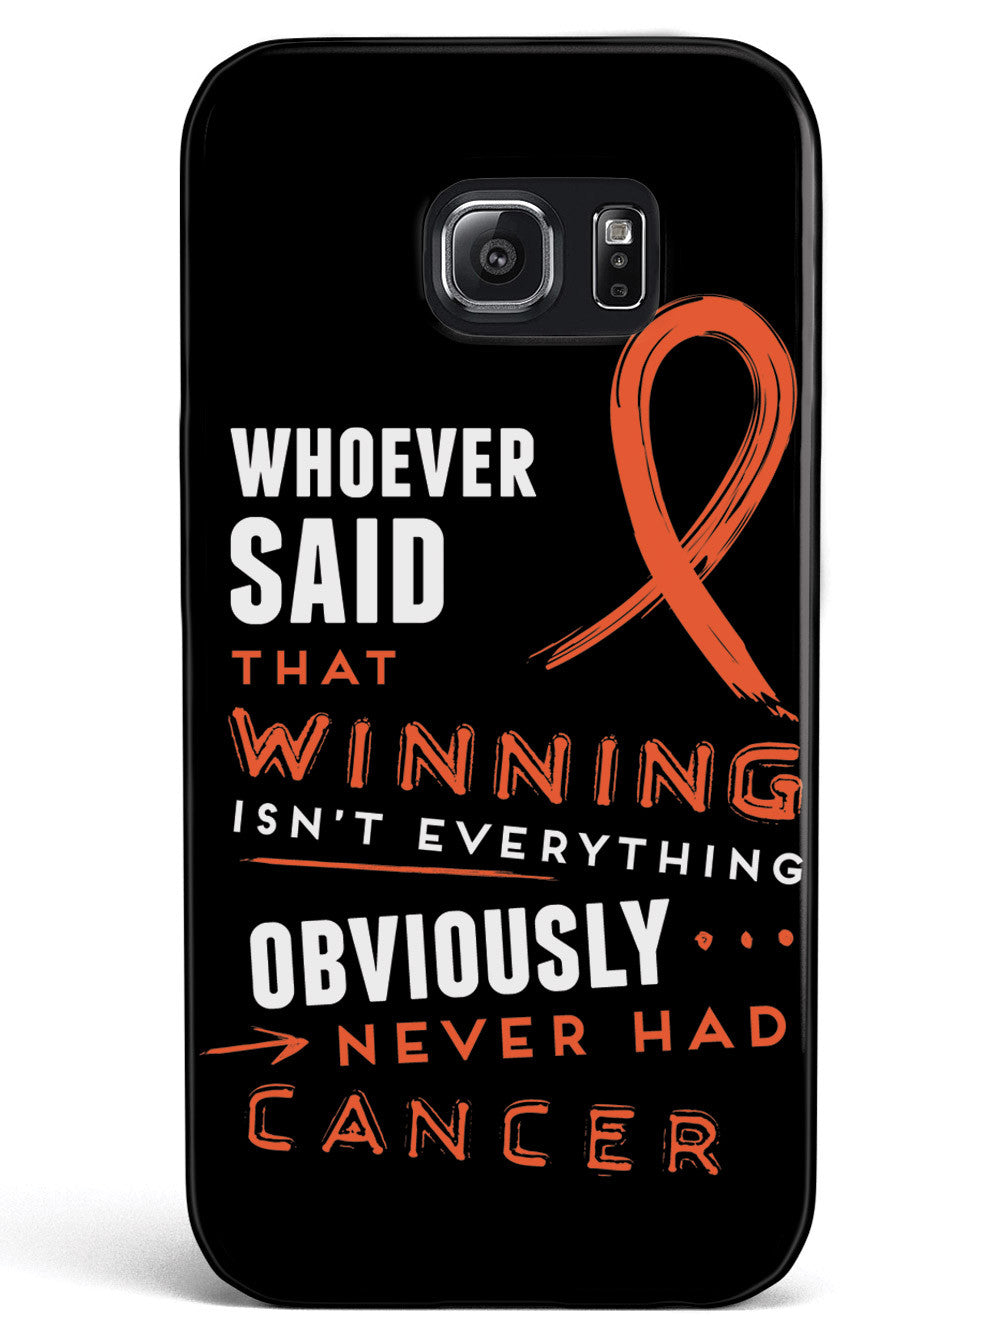 Winning is Everything - Cancer Awareness Orange Case